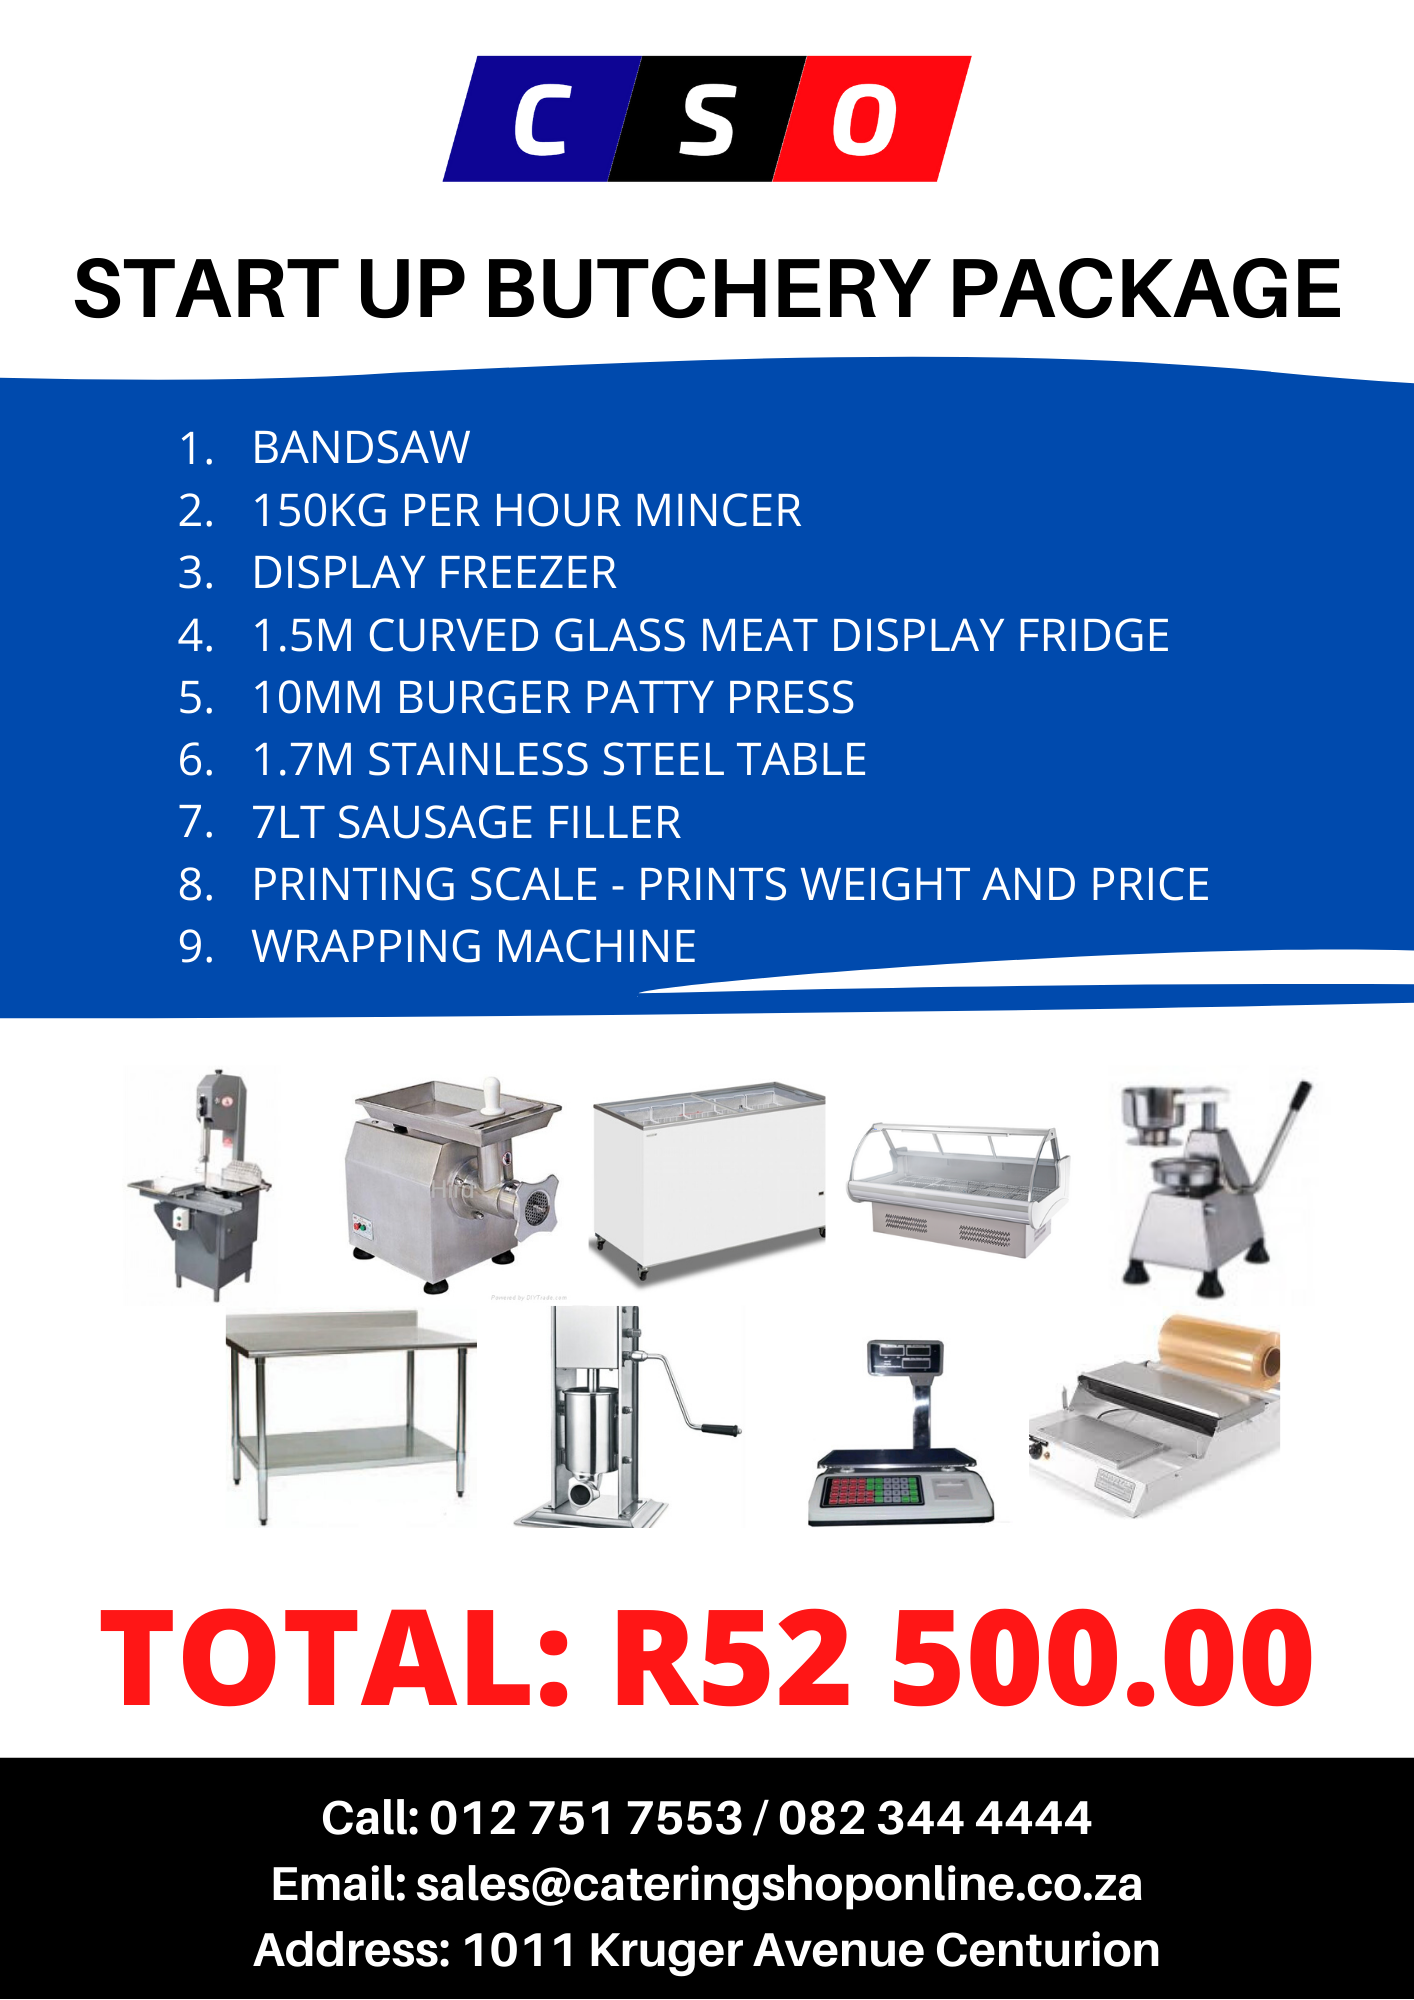 BRAND NEW butchery equipment for sale